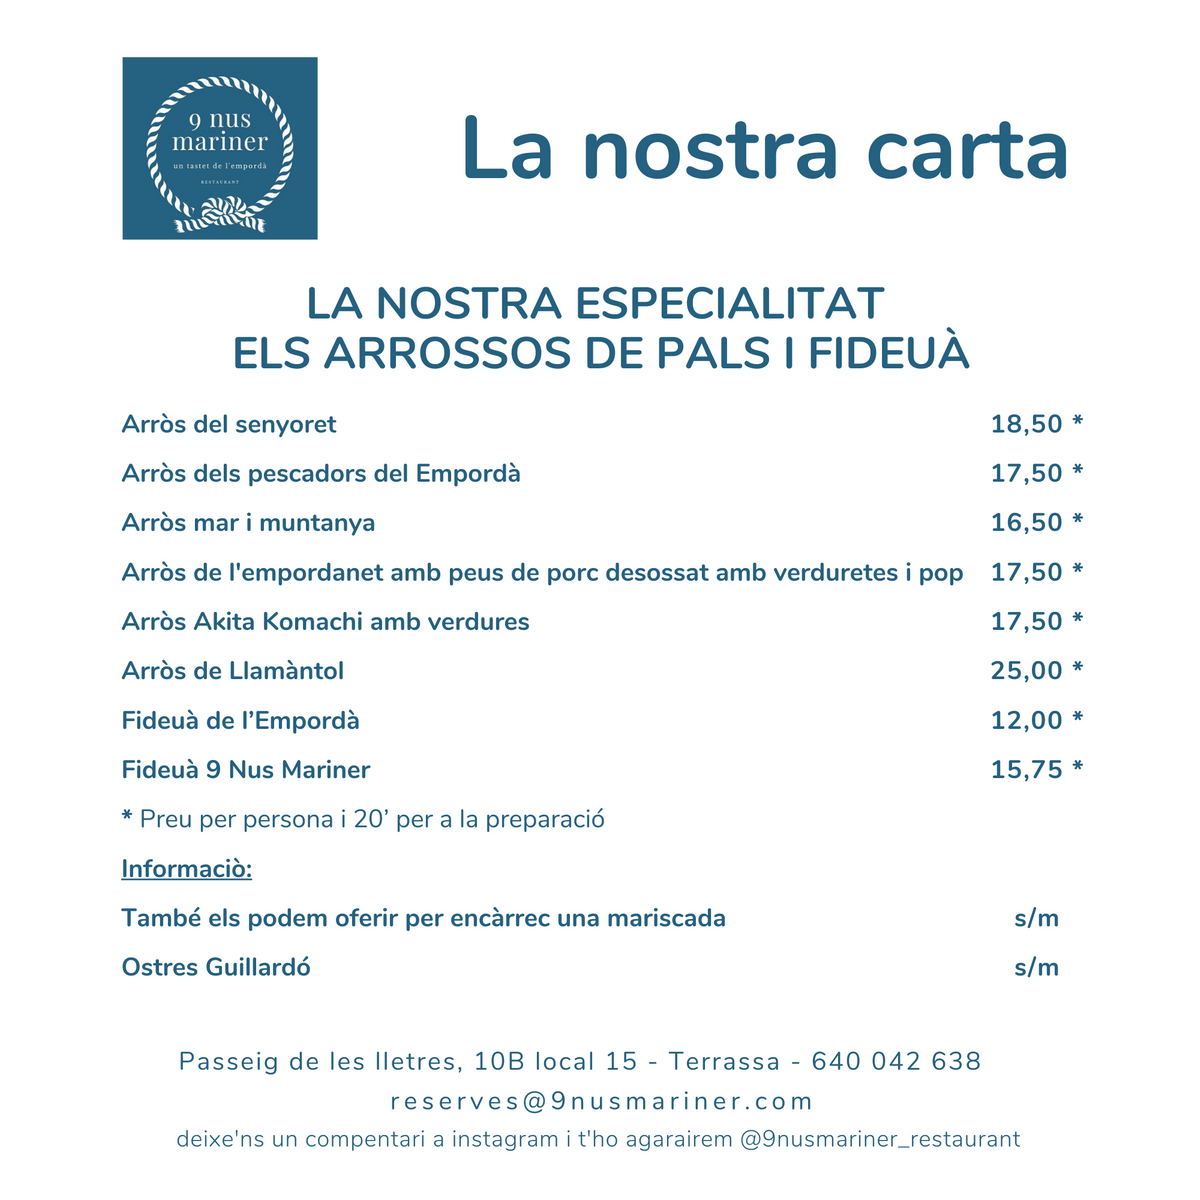 Copia de carta 9 nus mariner 2020 (2)